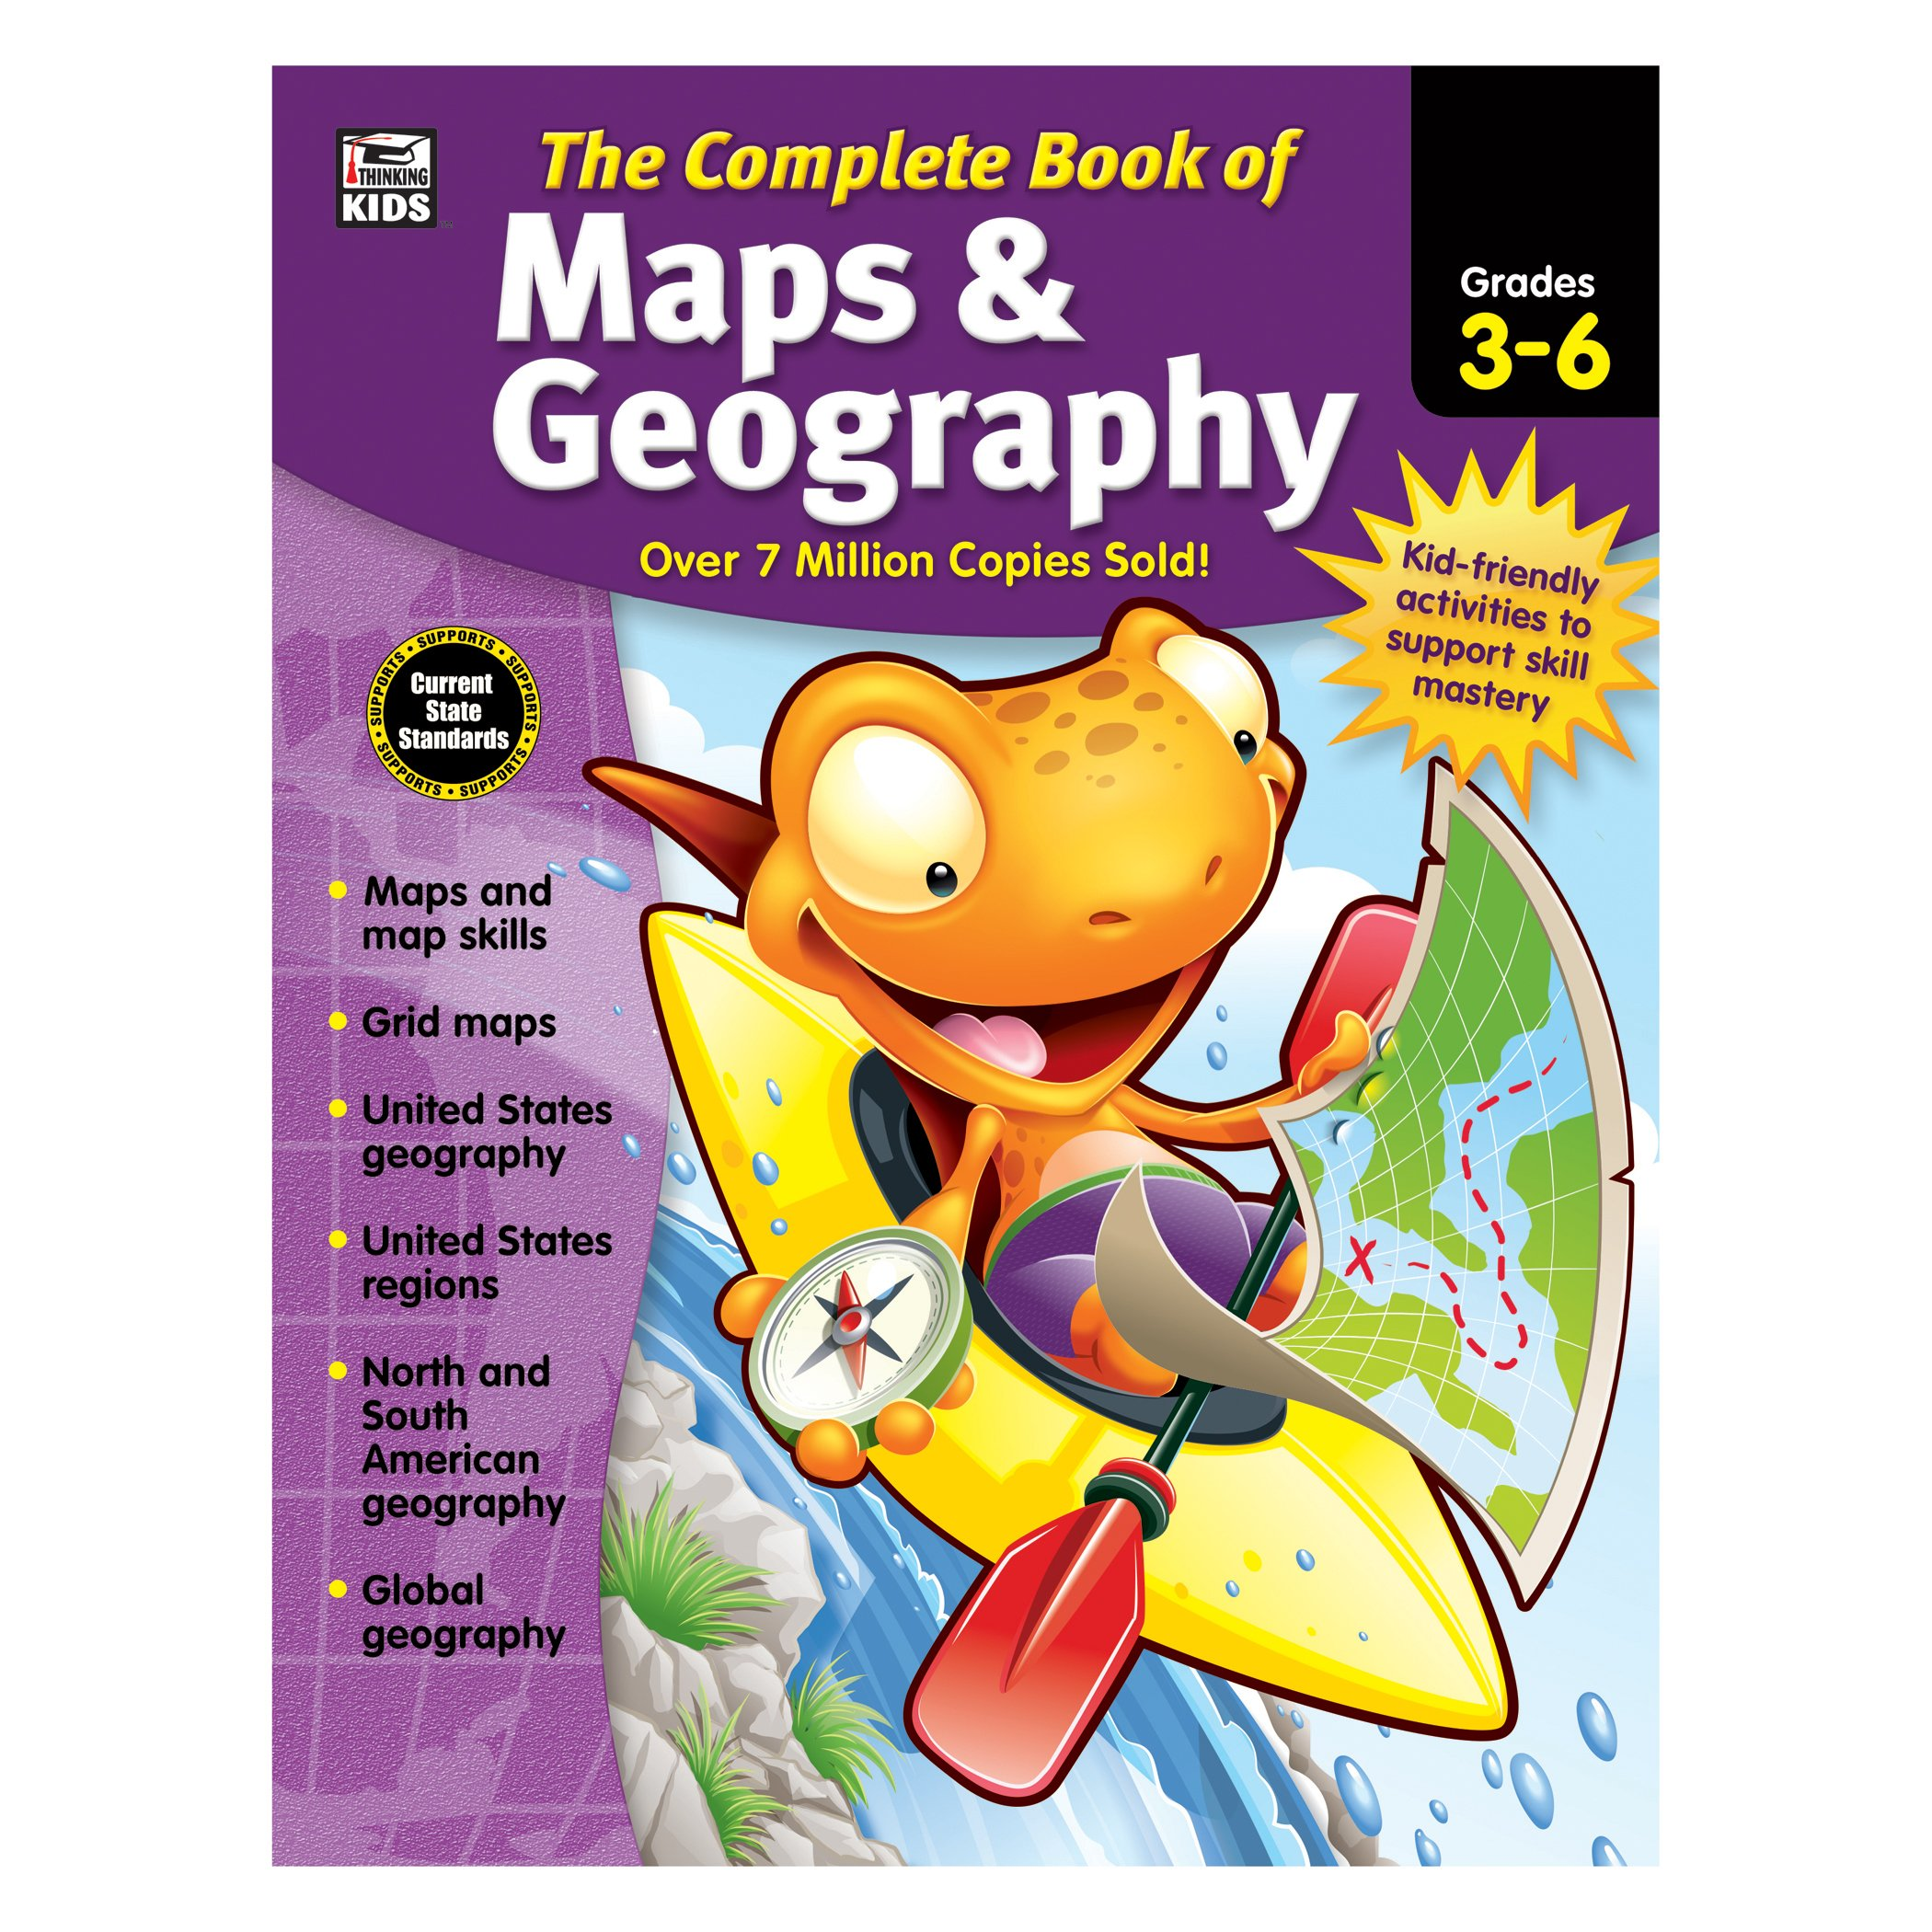 The Complete Book of Maps & Geography, Grades 3 - 6 by Carson-Dellosa (Image #1)